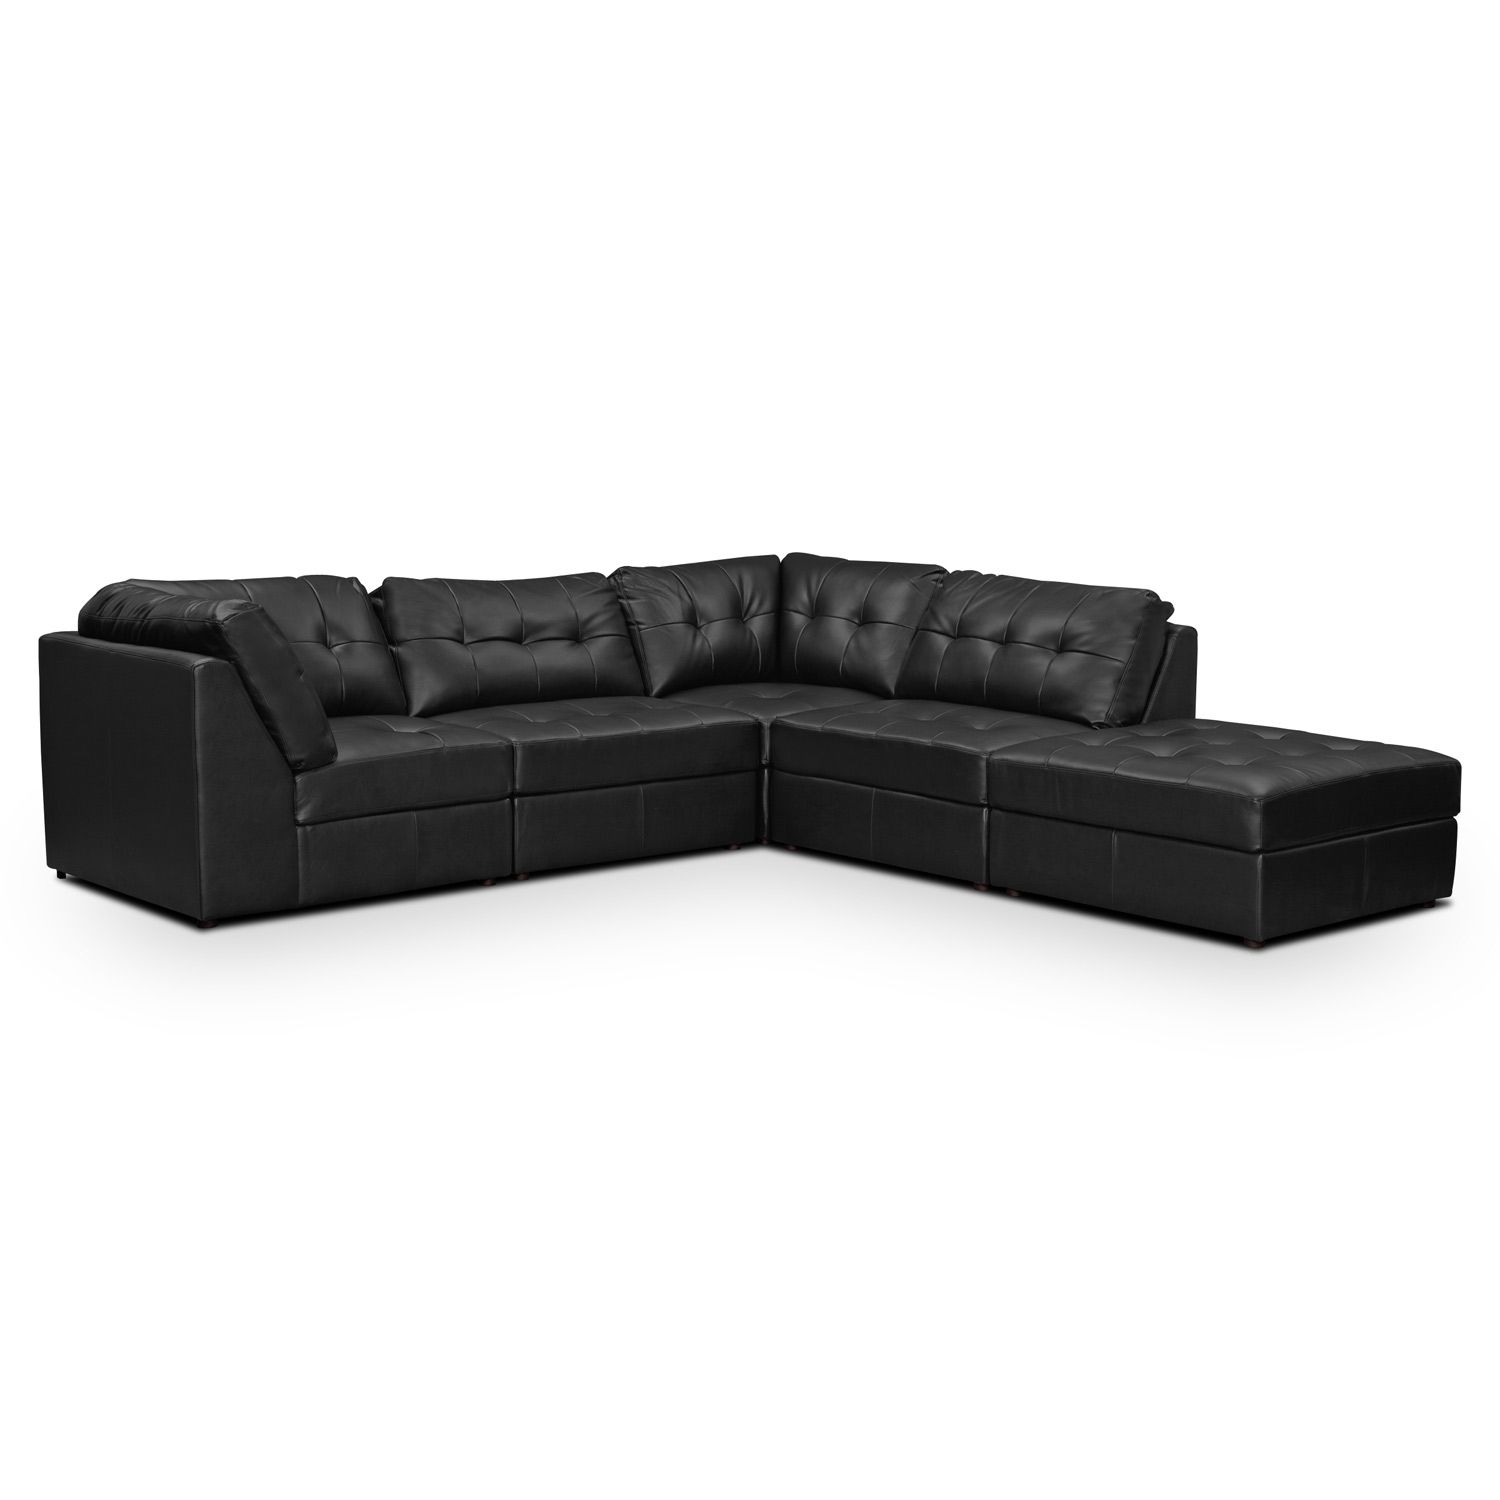 Aventura Leather 5 Pc (View 10 of 25)